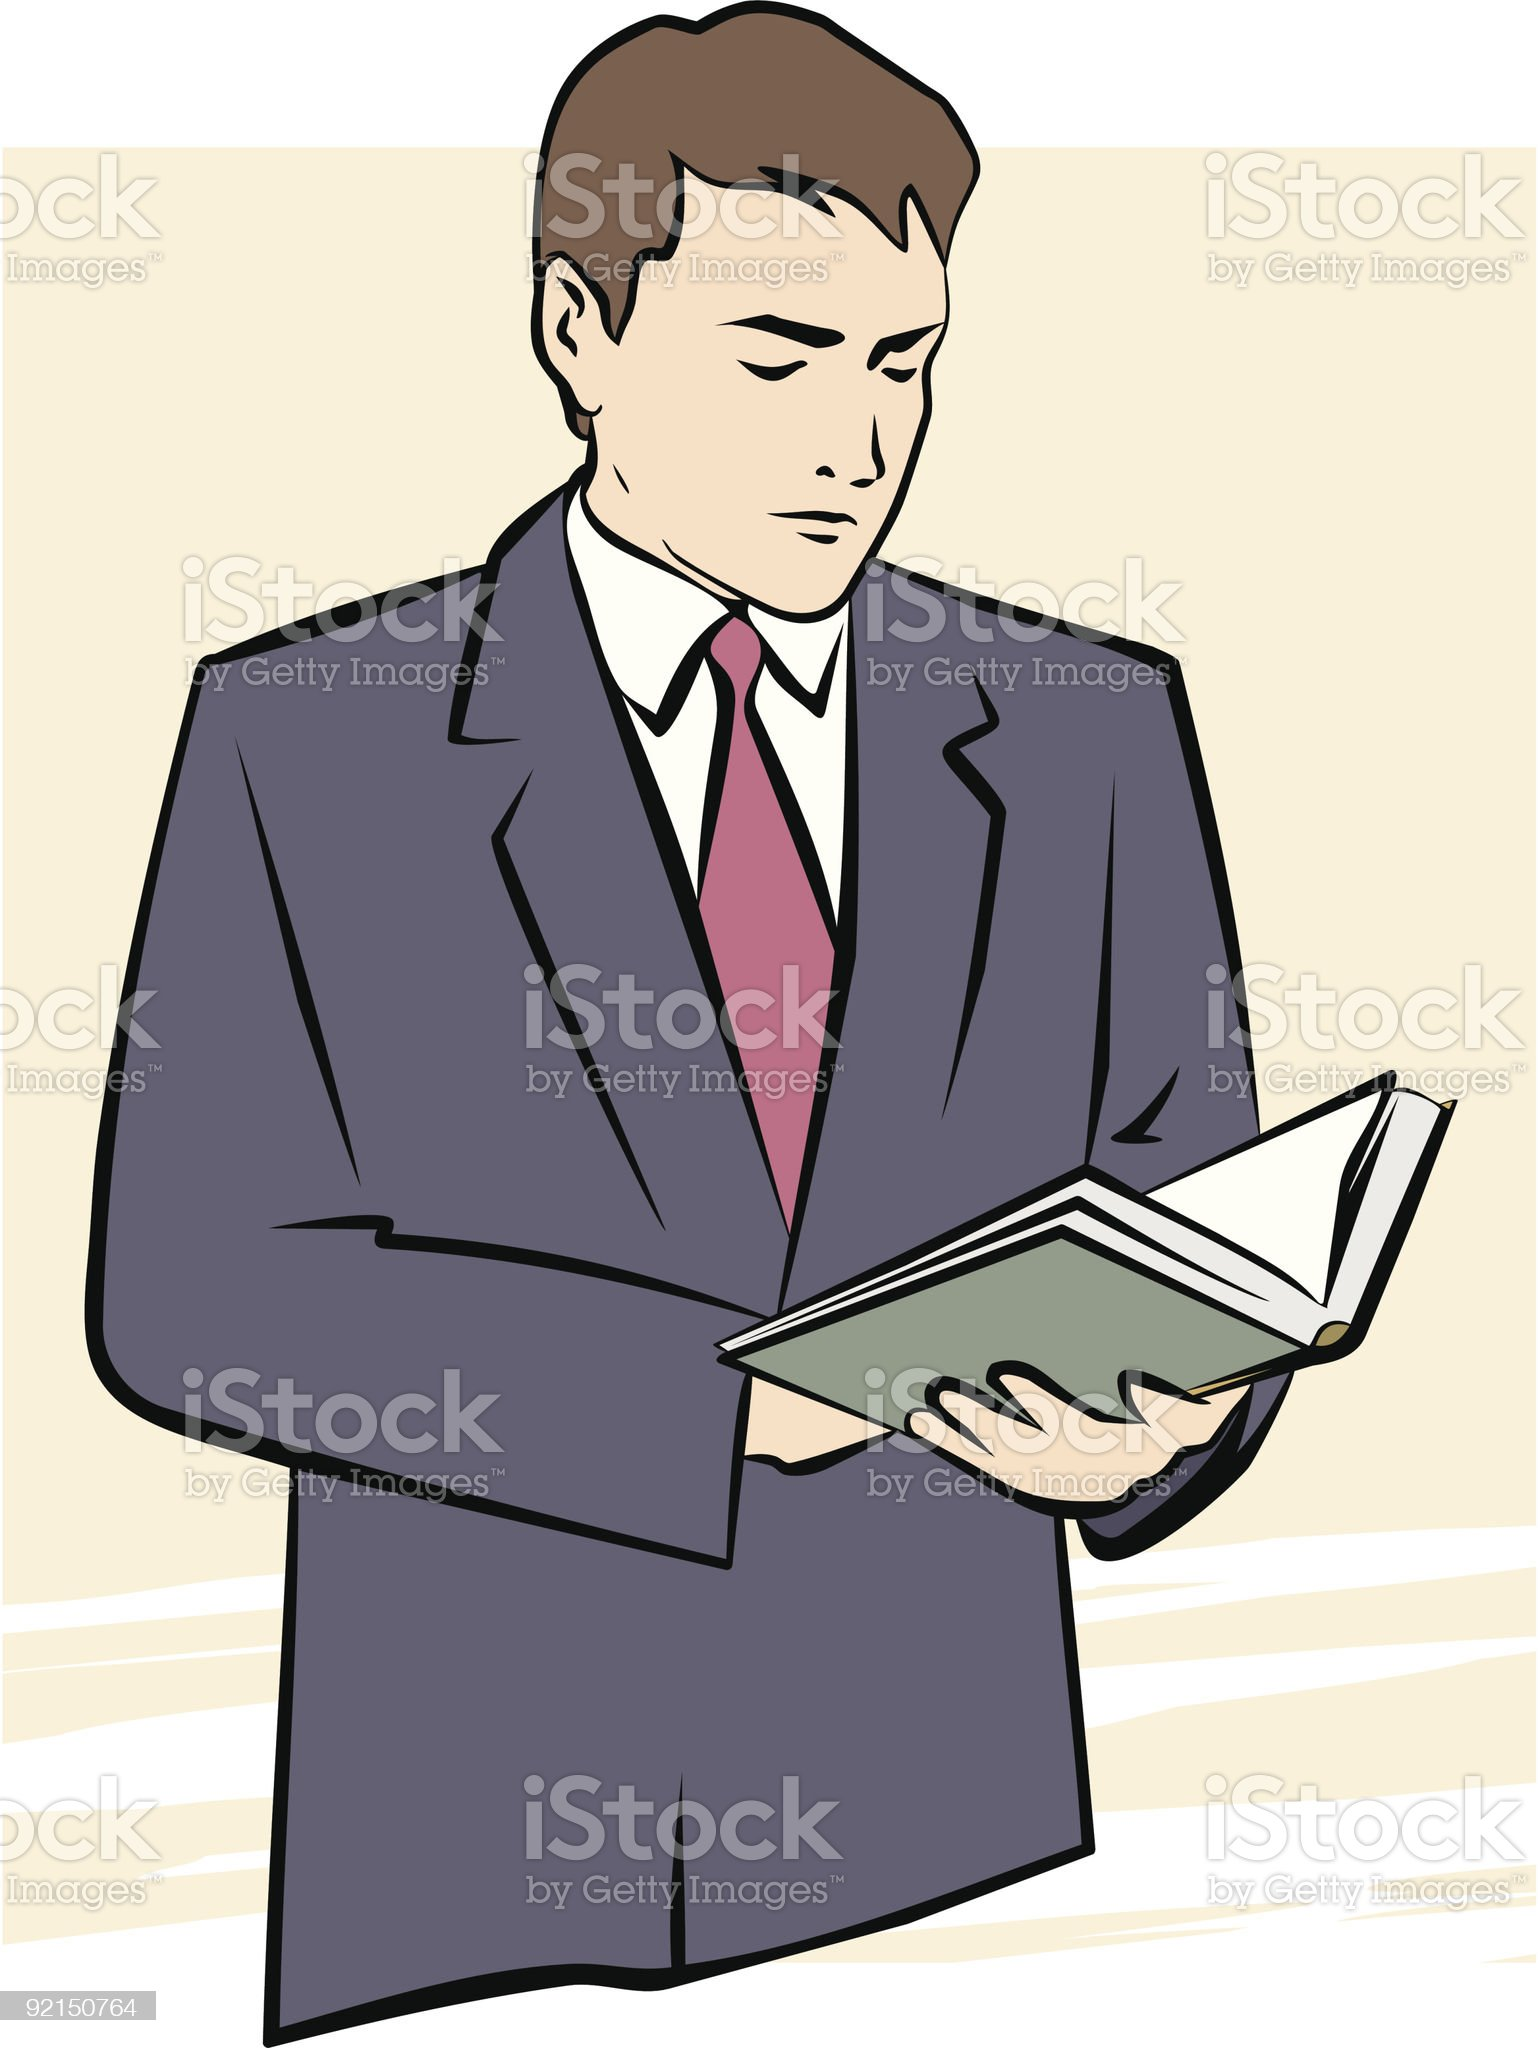 Man with Book royalty-free stock vector art